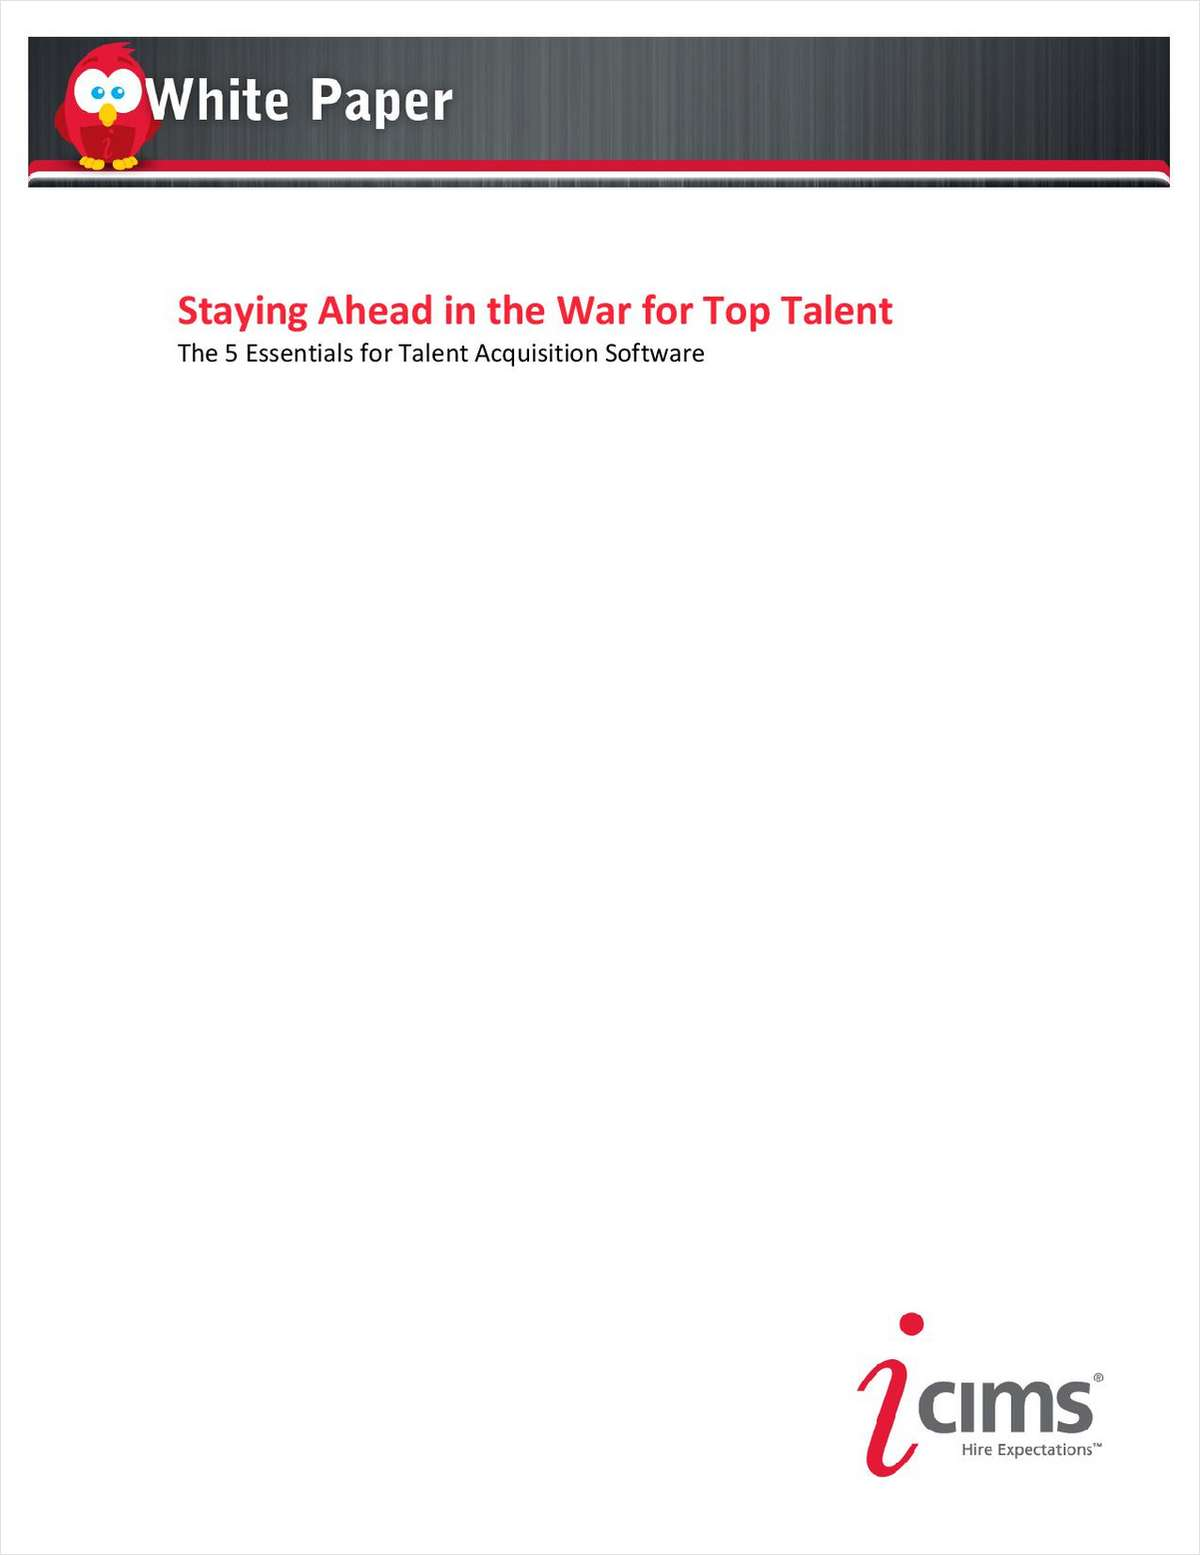 Staying Ahead in the War for Top Talent: The 5 Essentials for Talent Acquisition Software